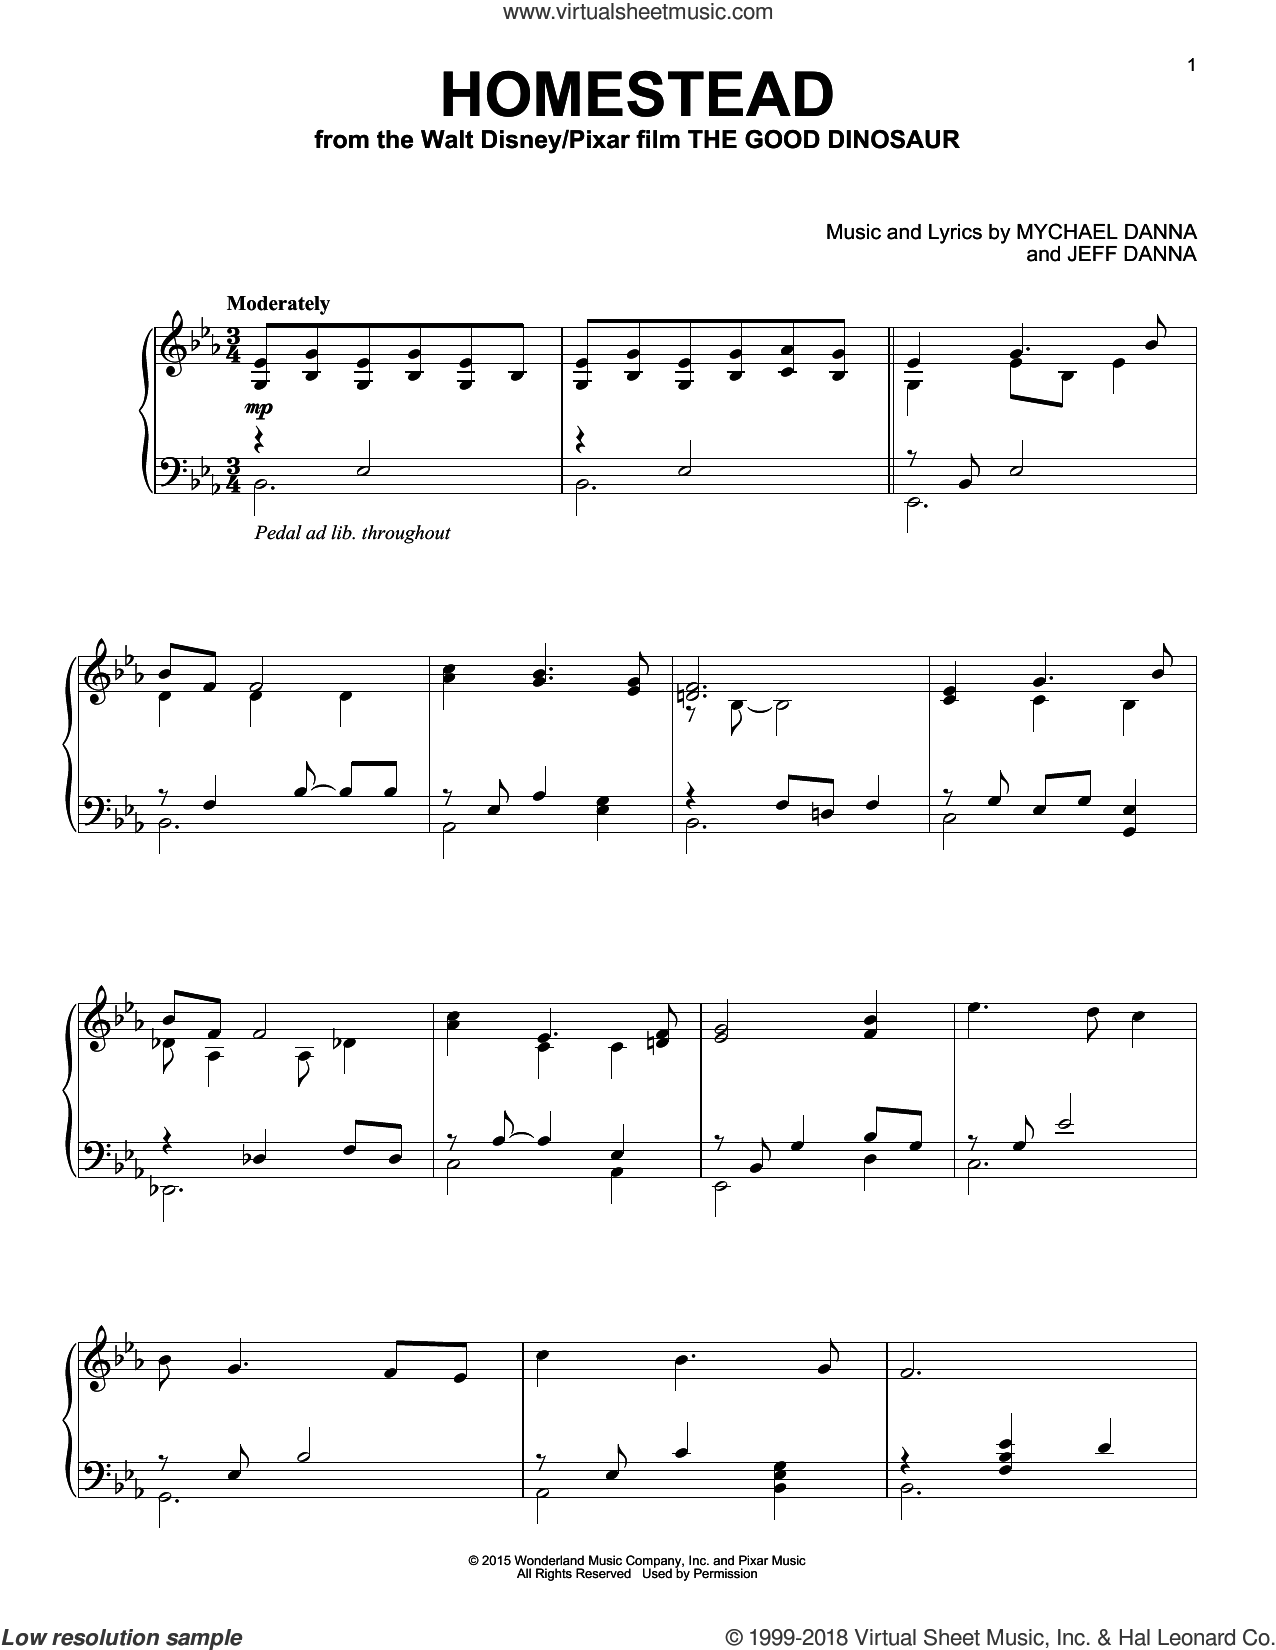 Homestead sheet music for piano solo by Mychael & Jeff Danna